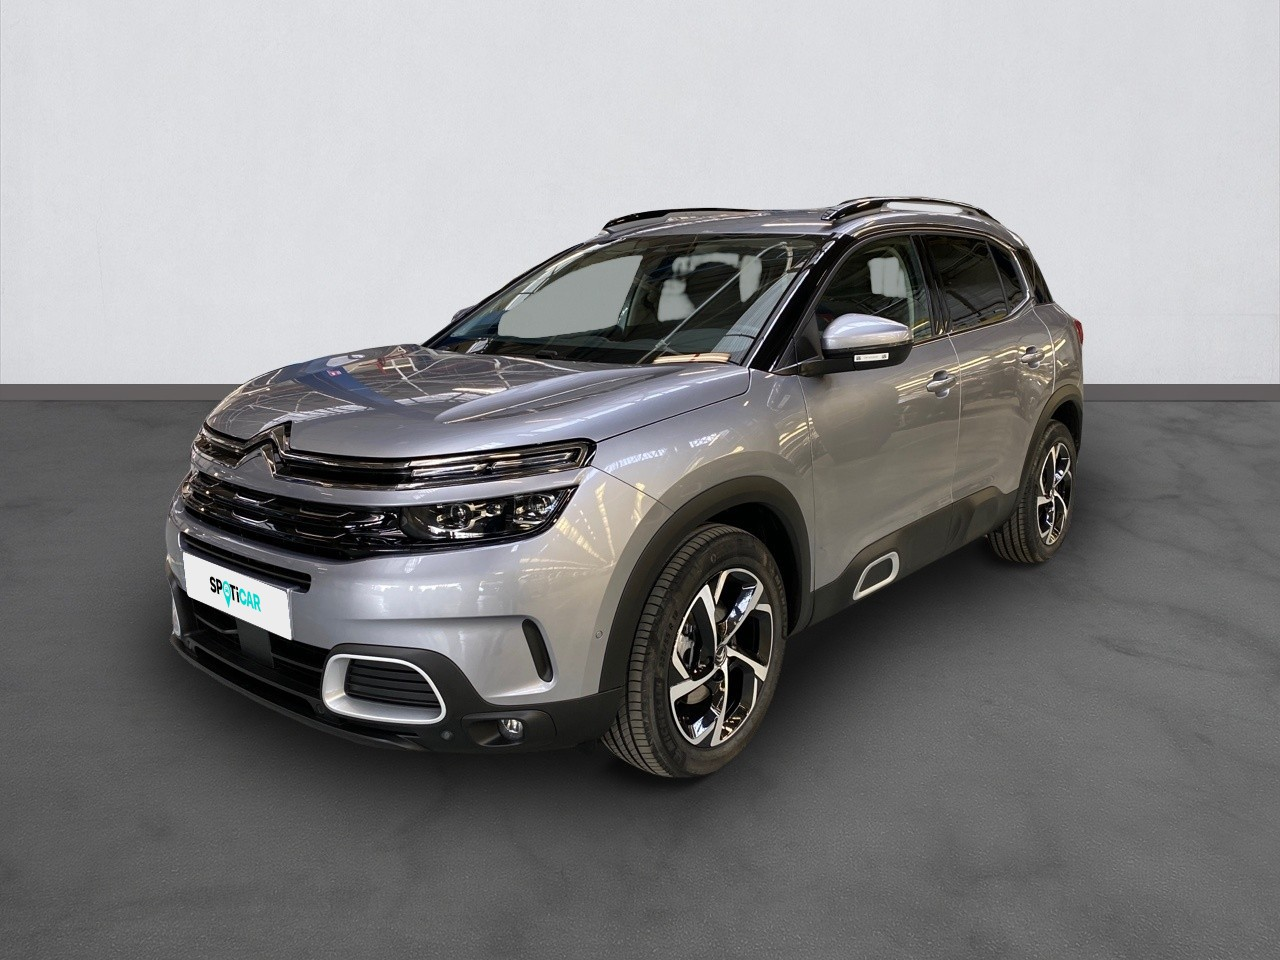 CITROEN C5 AIRCROSS BLUEHDI 130 S&S BVM6 SHINE